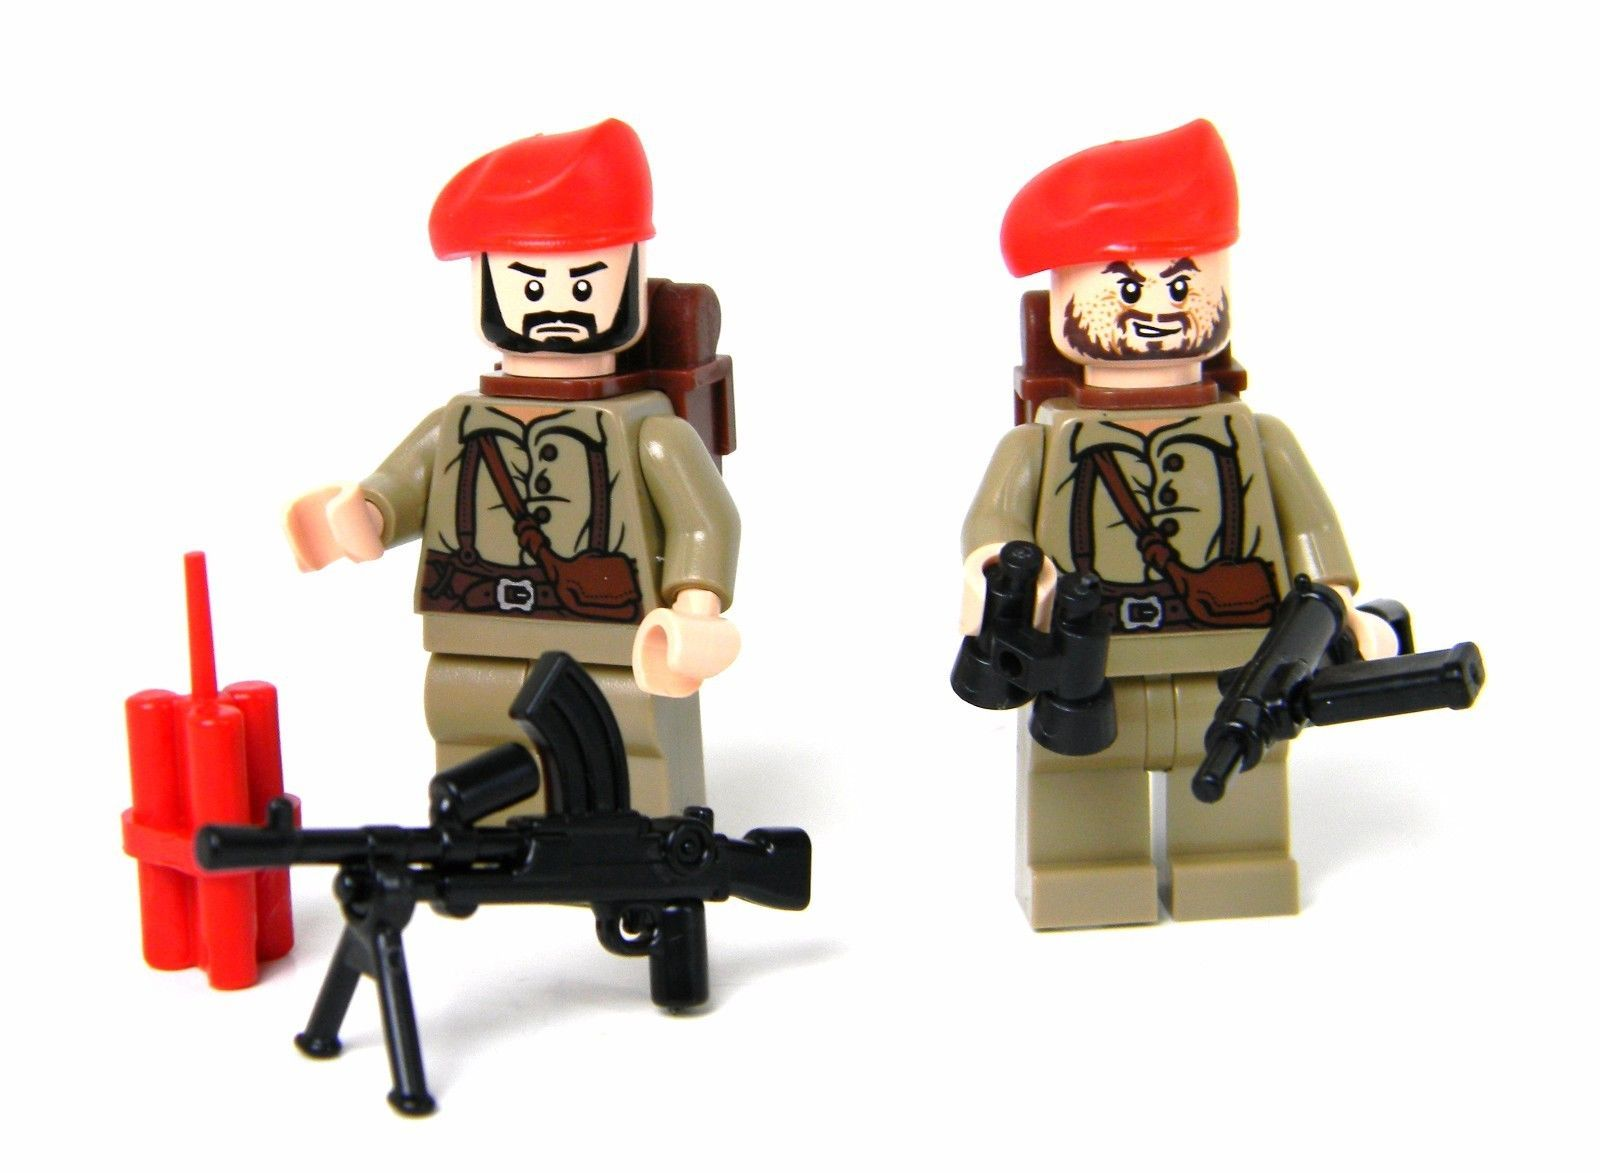 R minifig World War German Panzer Tank Commander Minifigure made with real LEGO